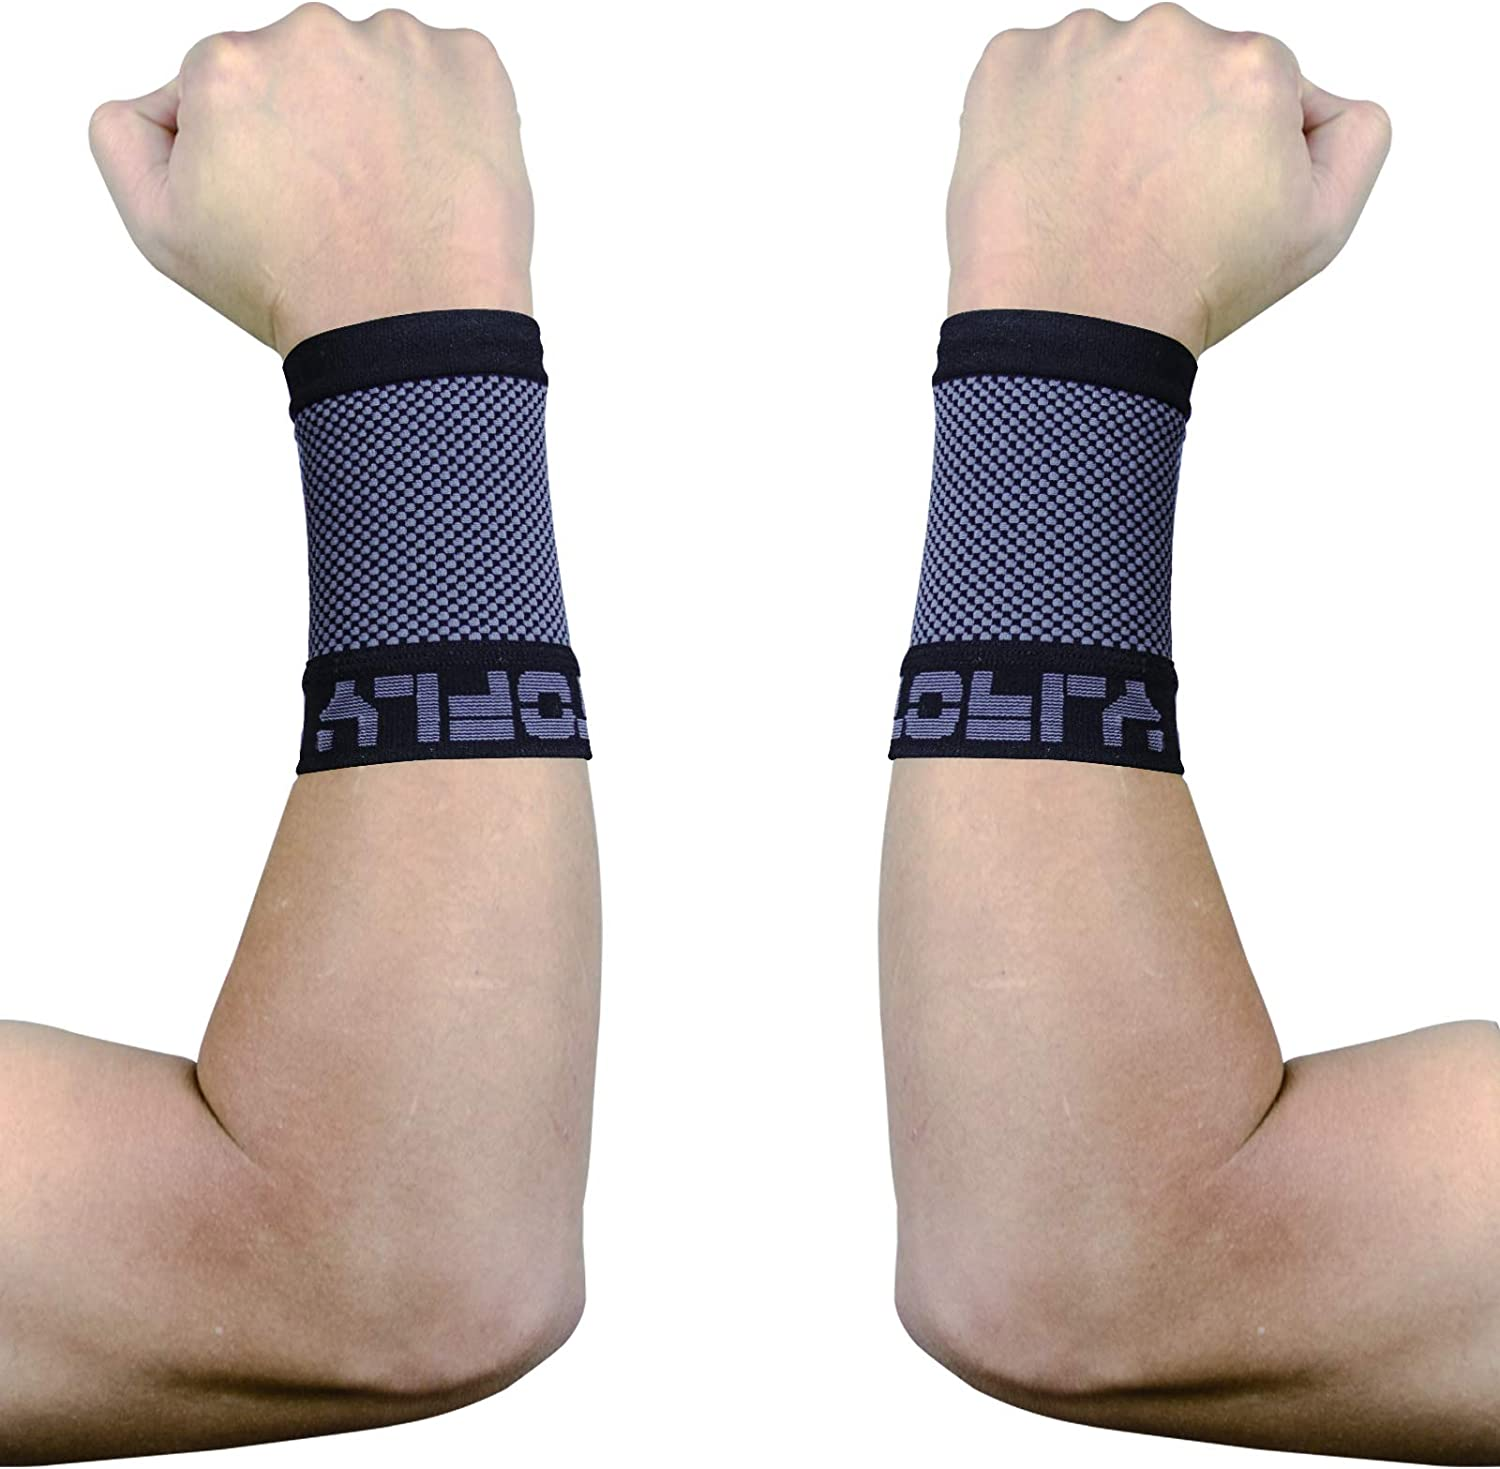 Super sale period limited TOFLY Compression Wrist Brace 2021 autumn and winter new 20-30mmHg Pair Sleeves Unisex